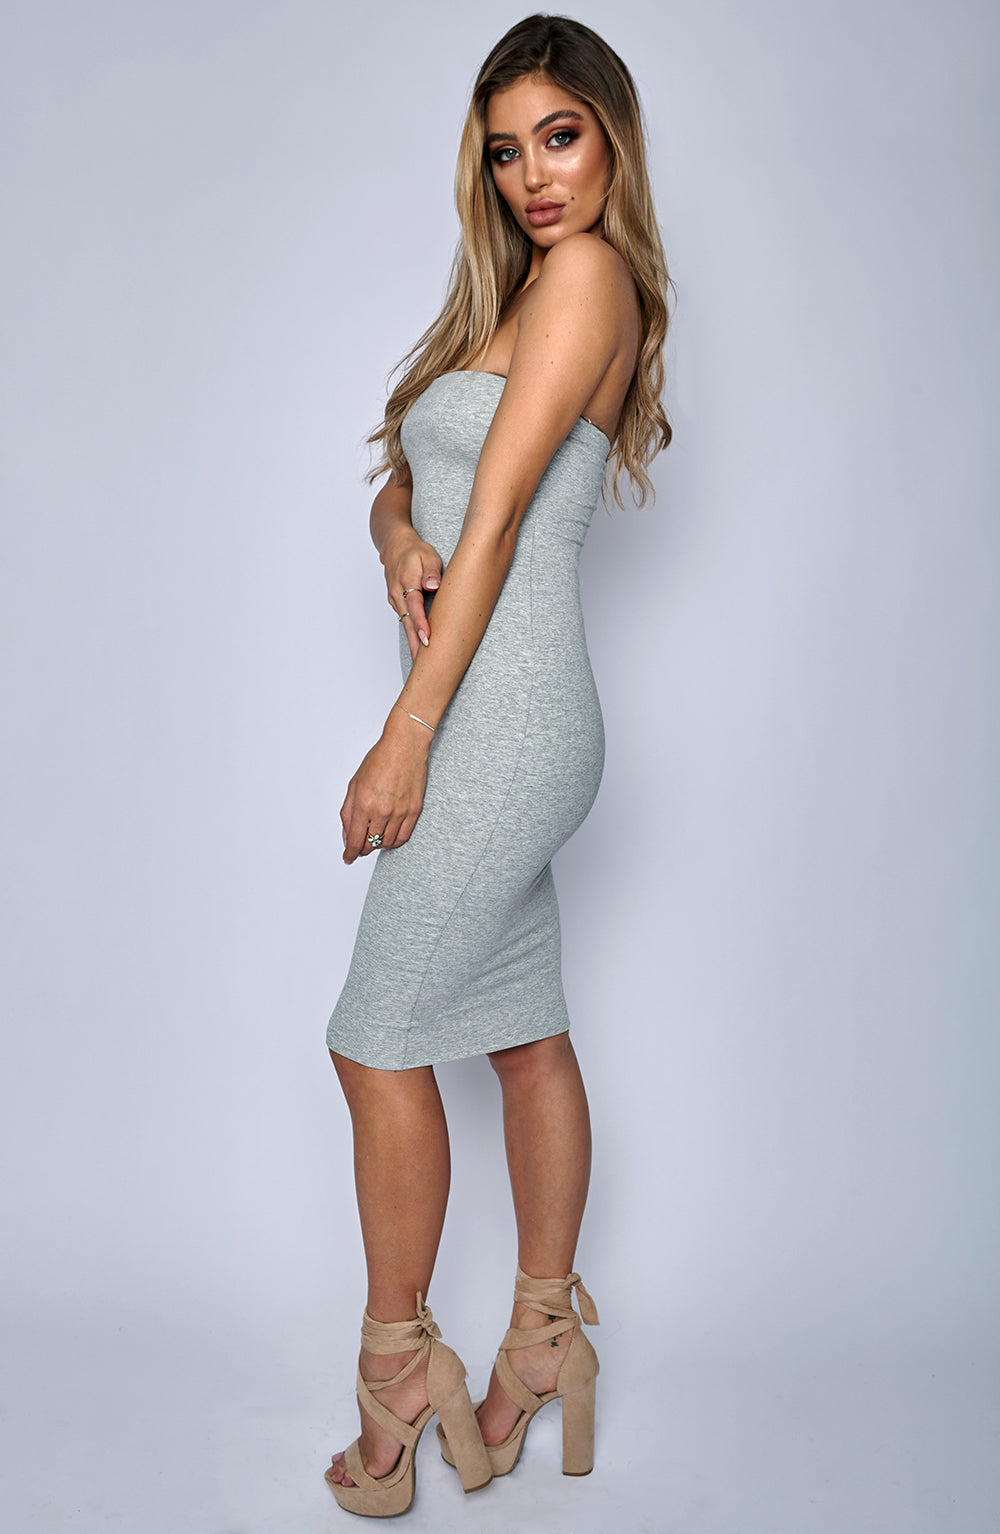 Zaria Dress - Grey